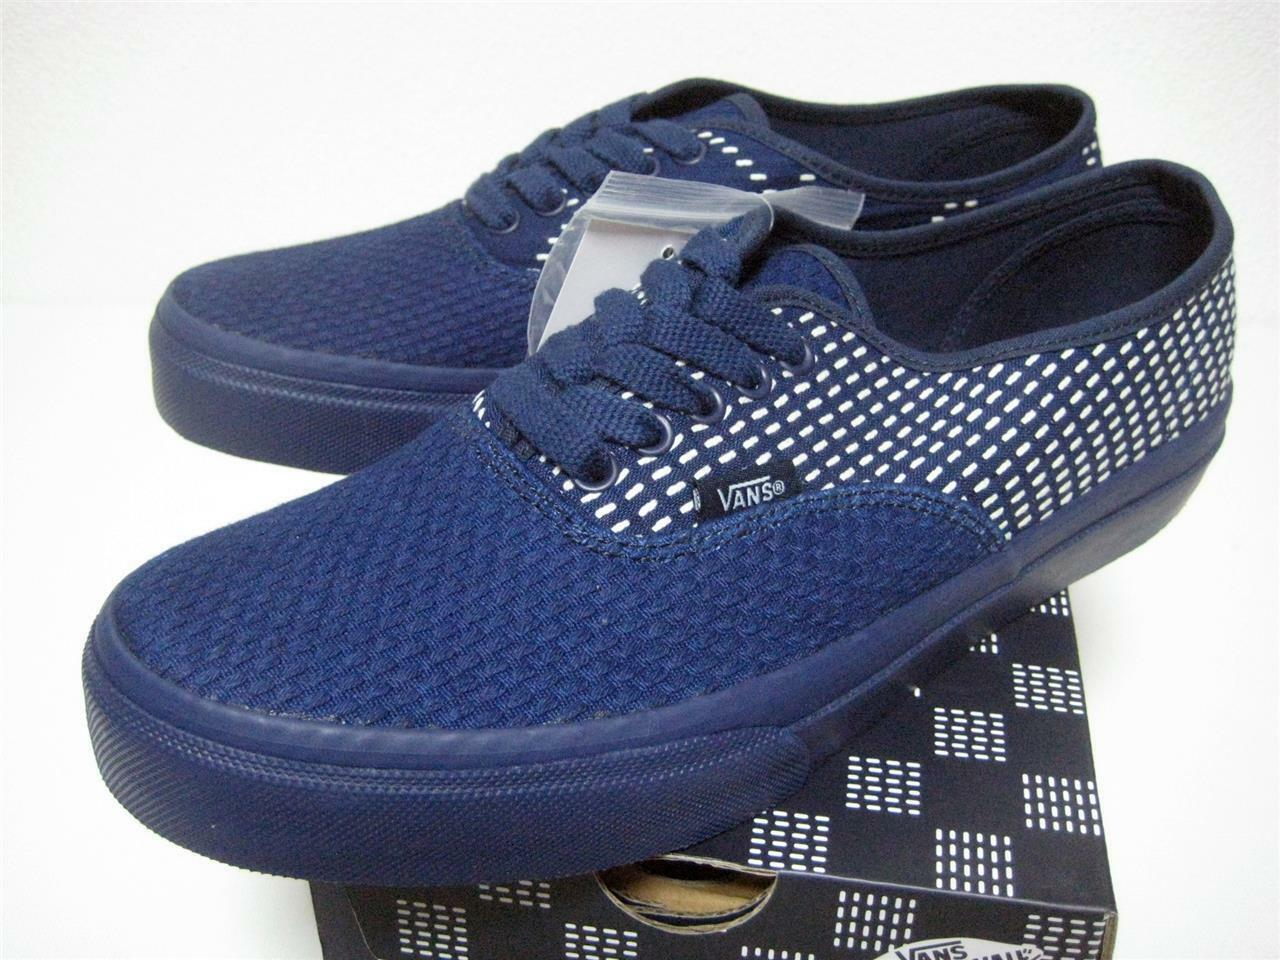 VANS FDMTL AUTHENTIC navy V44CL FUNDAMENTAL from Japan US10.5 brand new